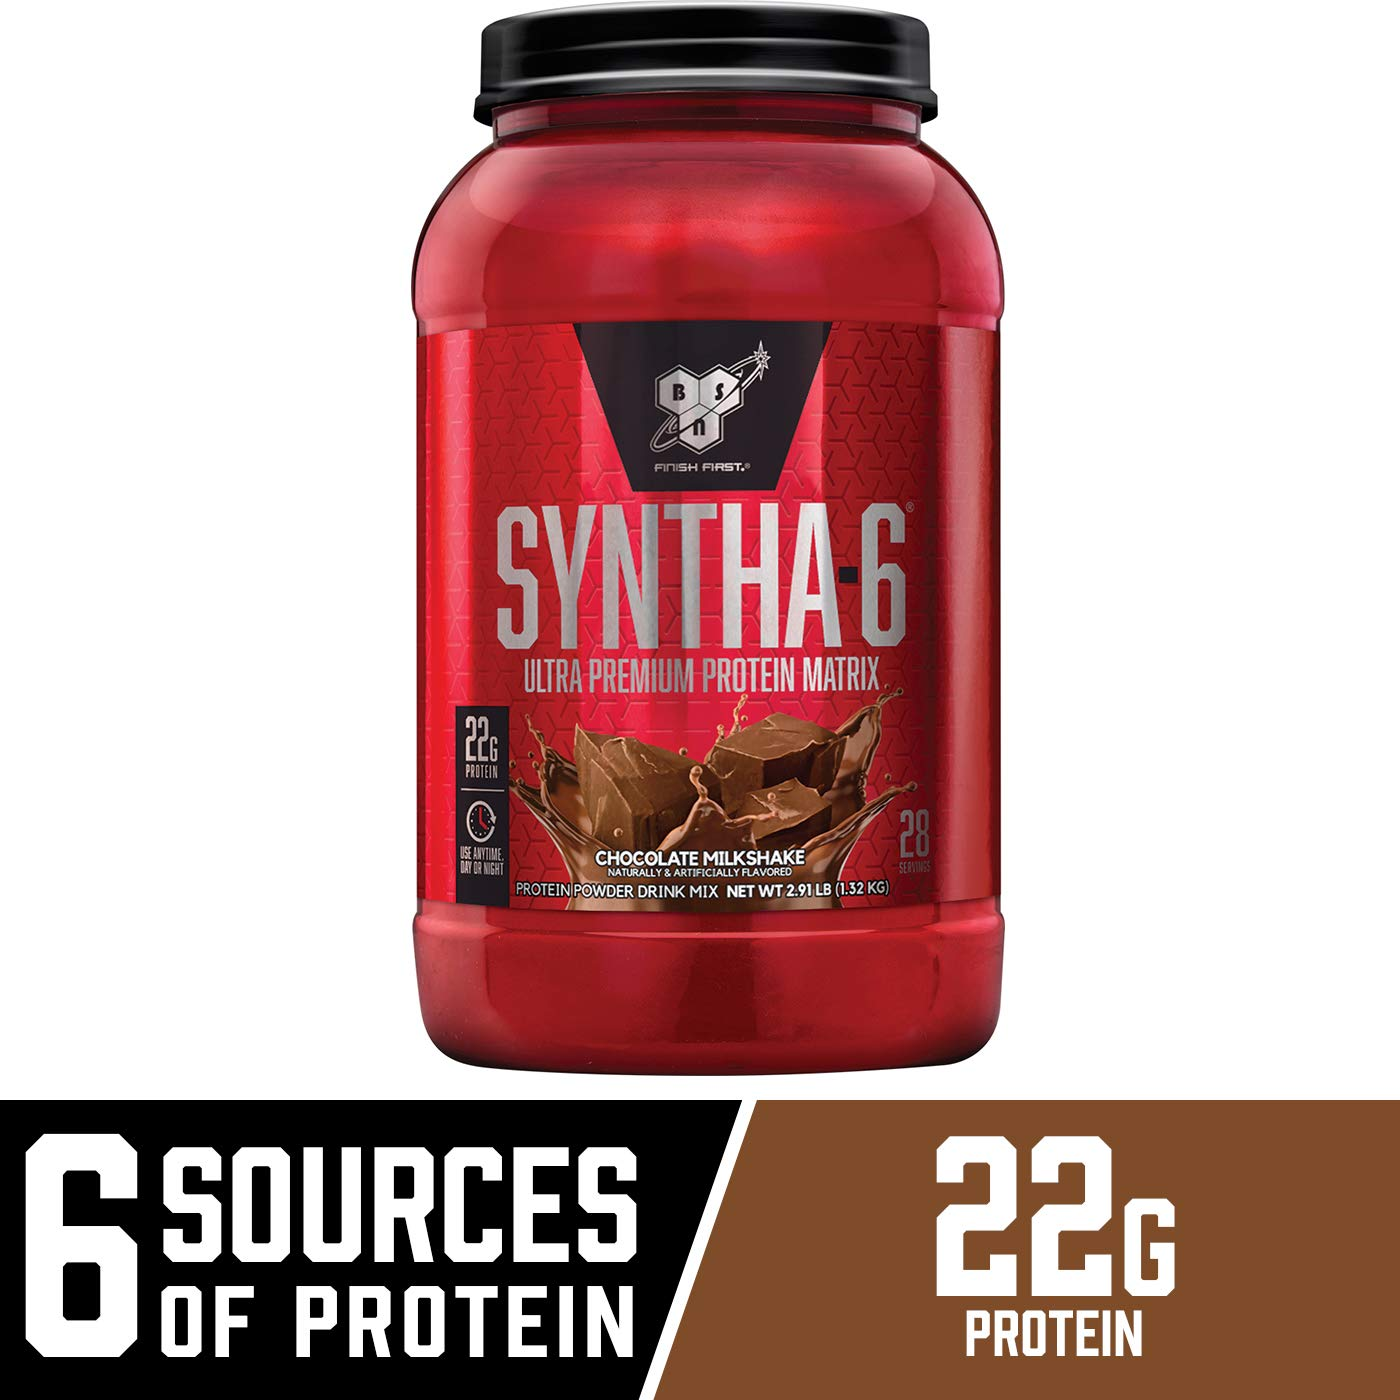 BSN SYNTHA-6 Whey Protein Powder, Micellar Casein, Milk Protein Isolate Powder, Chocolate Milkshake, 28 Servings (Package May Vary)